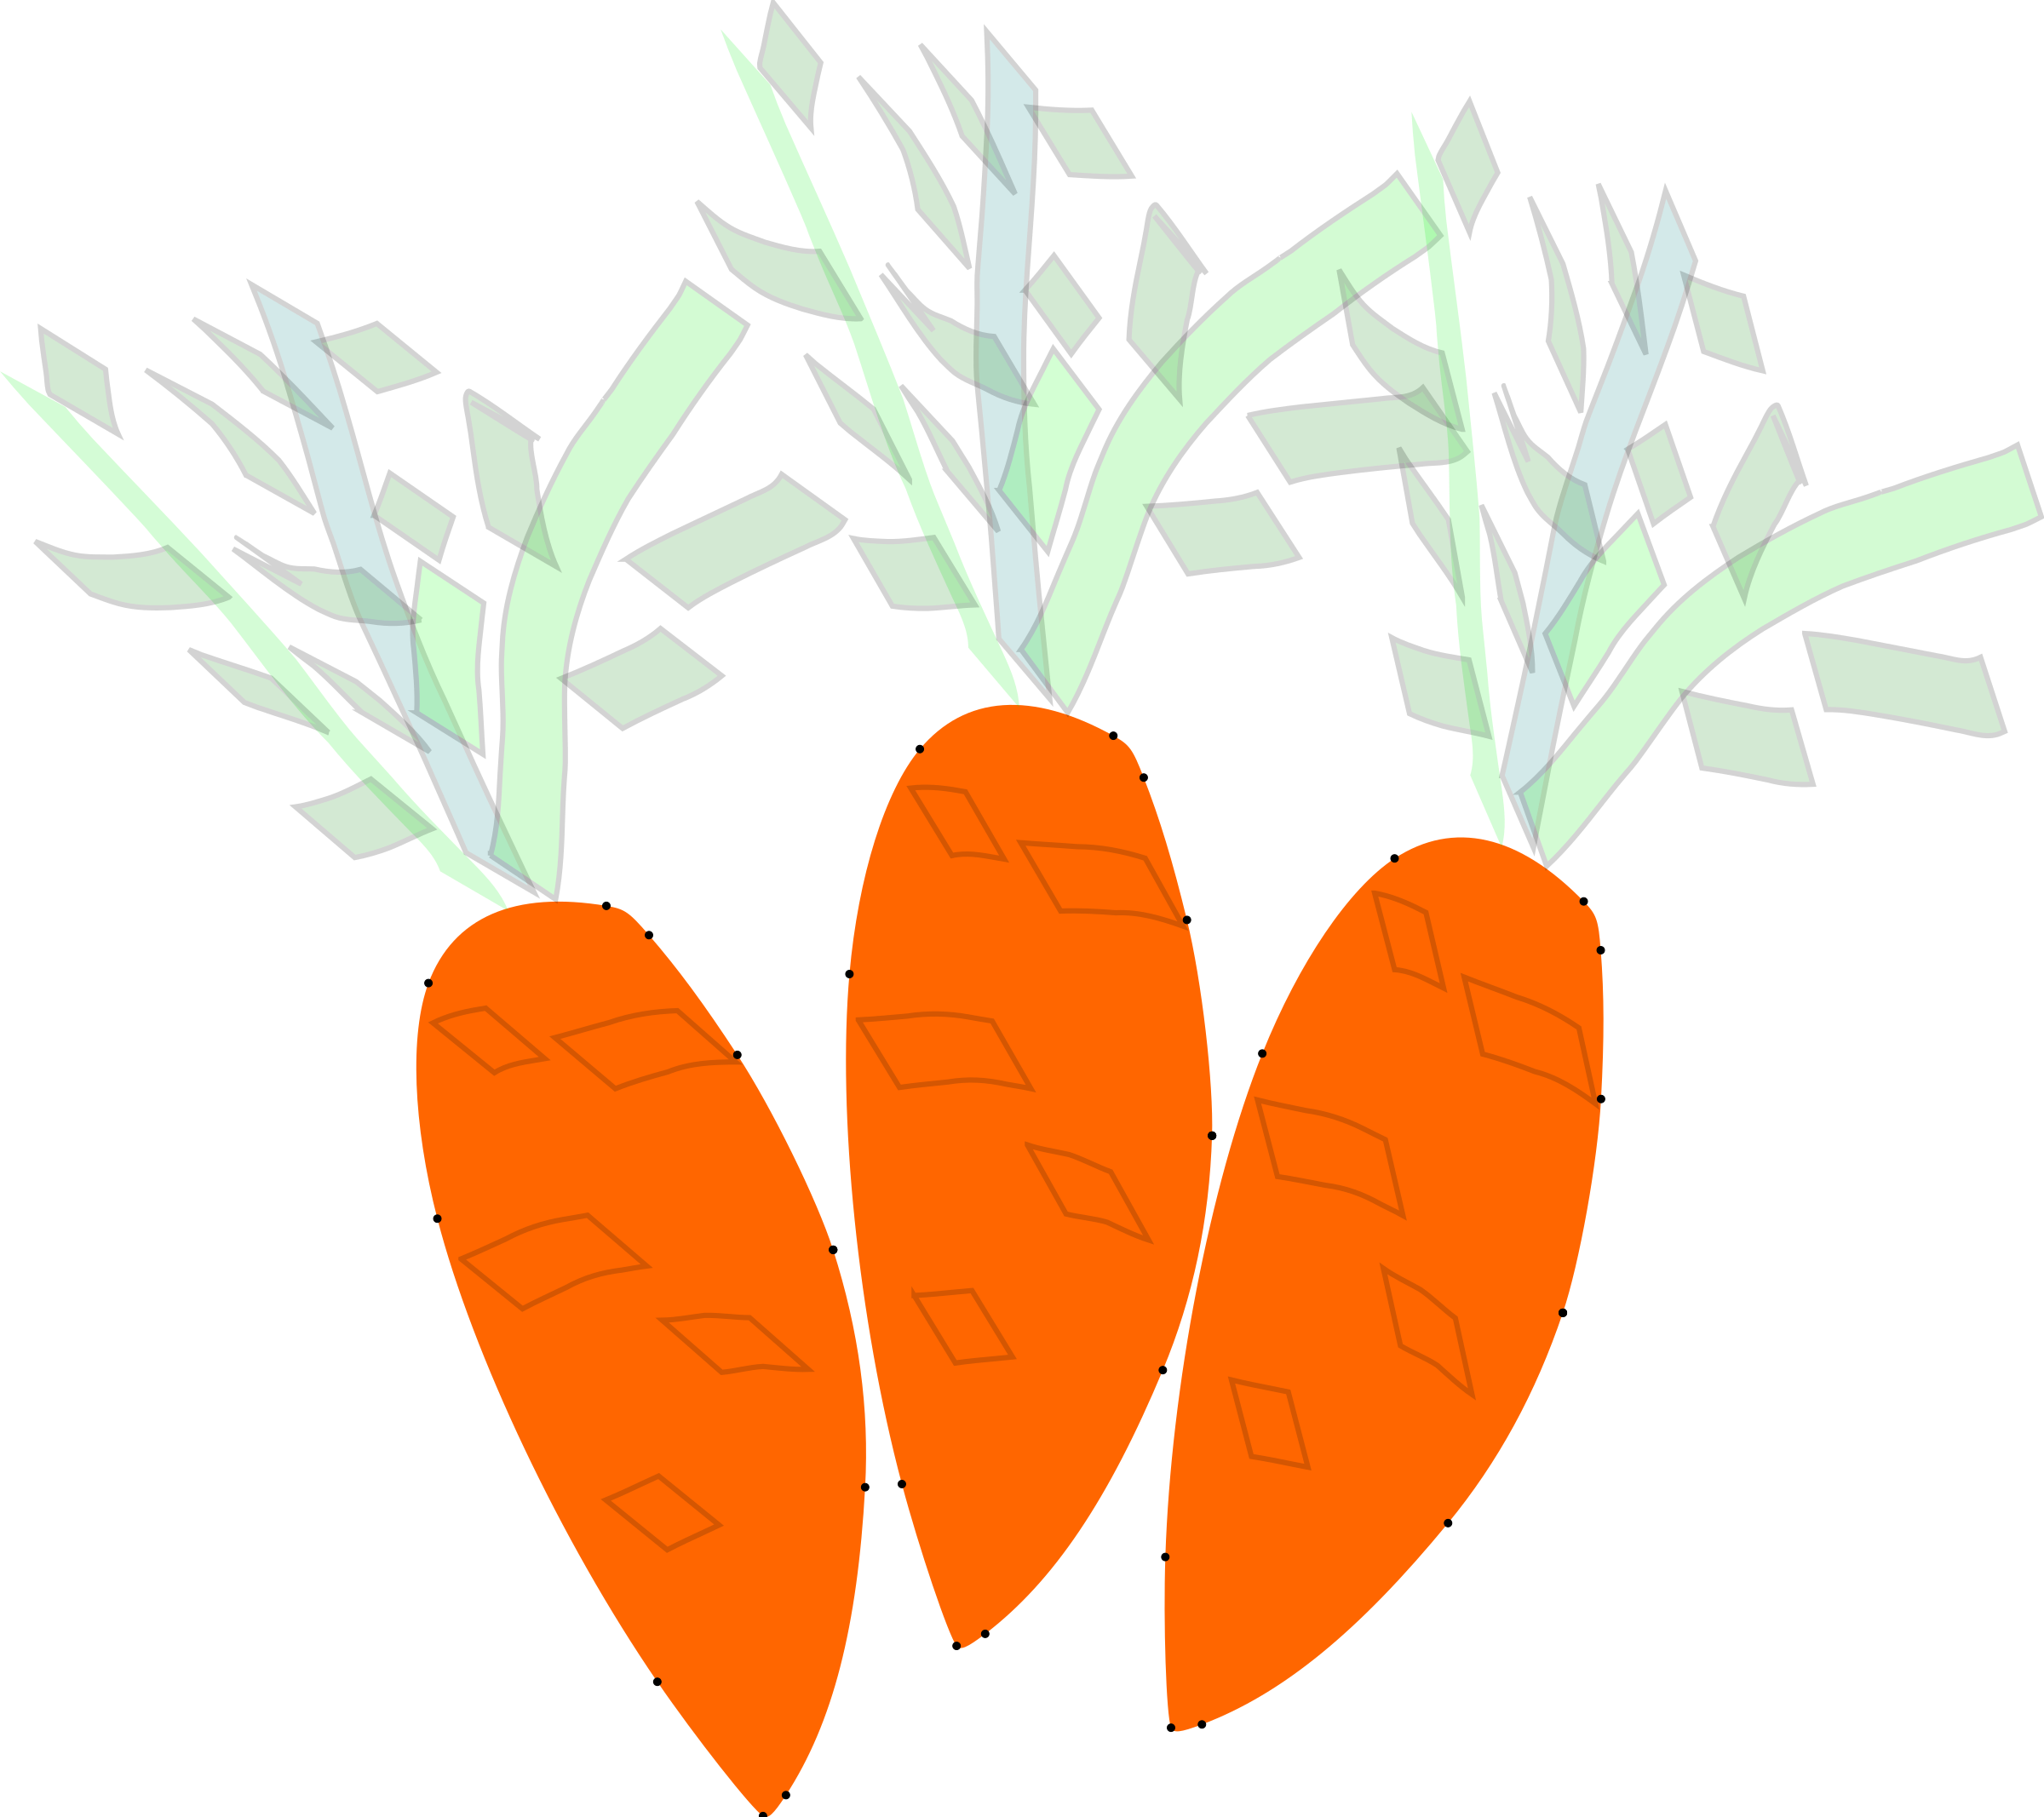 Carrots icons png free. Garden clipart carrot